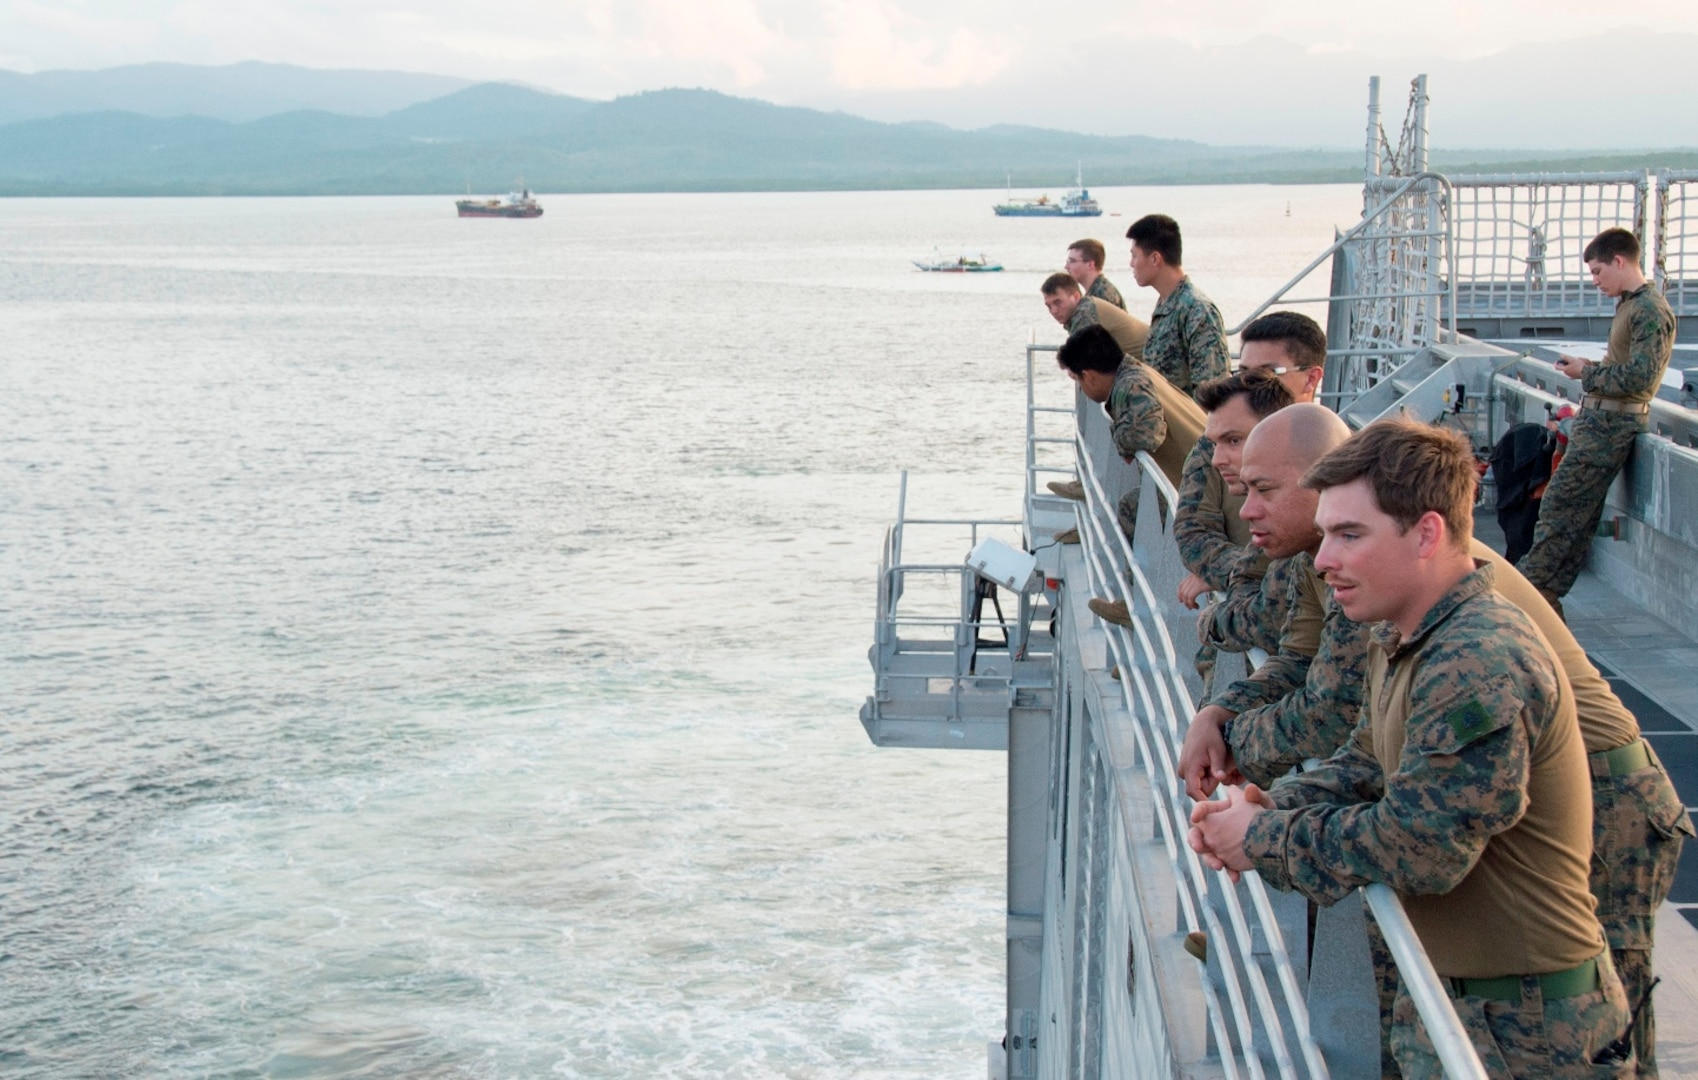 USNS Millinocket arrives in Puerto Princesa, Philippines in support of 7th Fleet's TSC mission